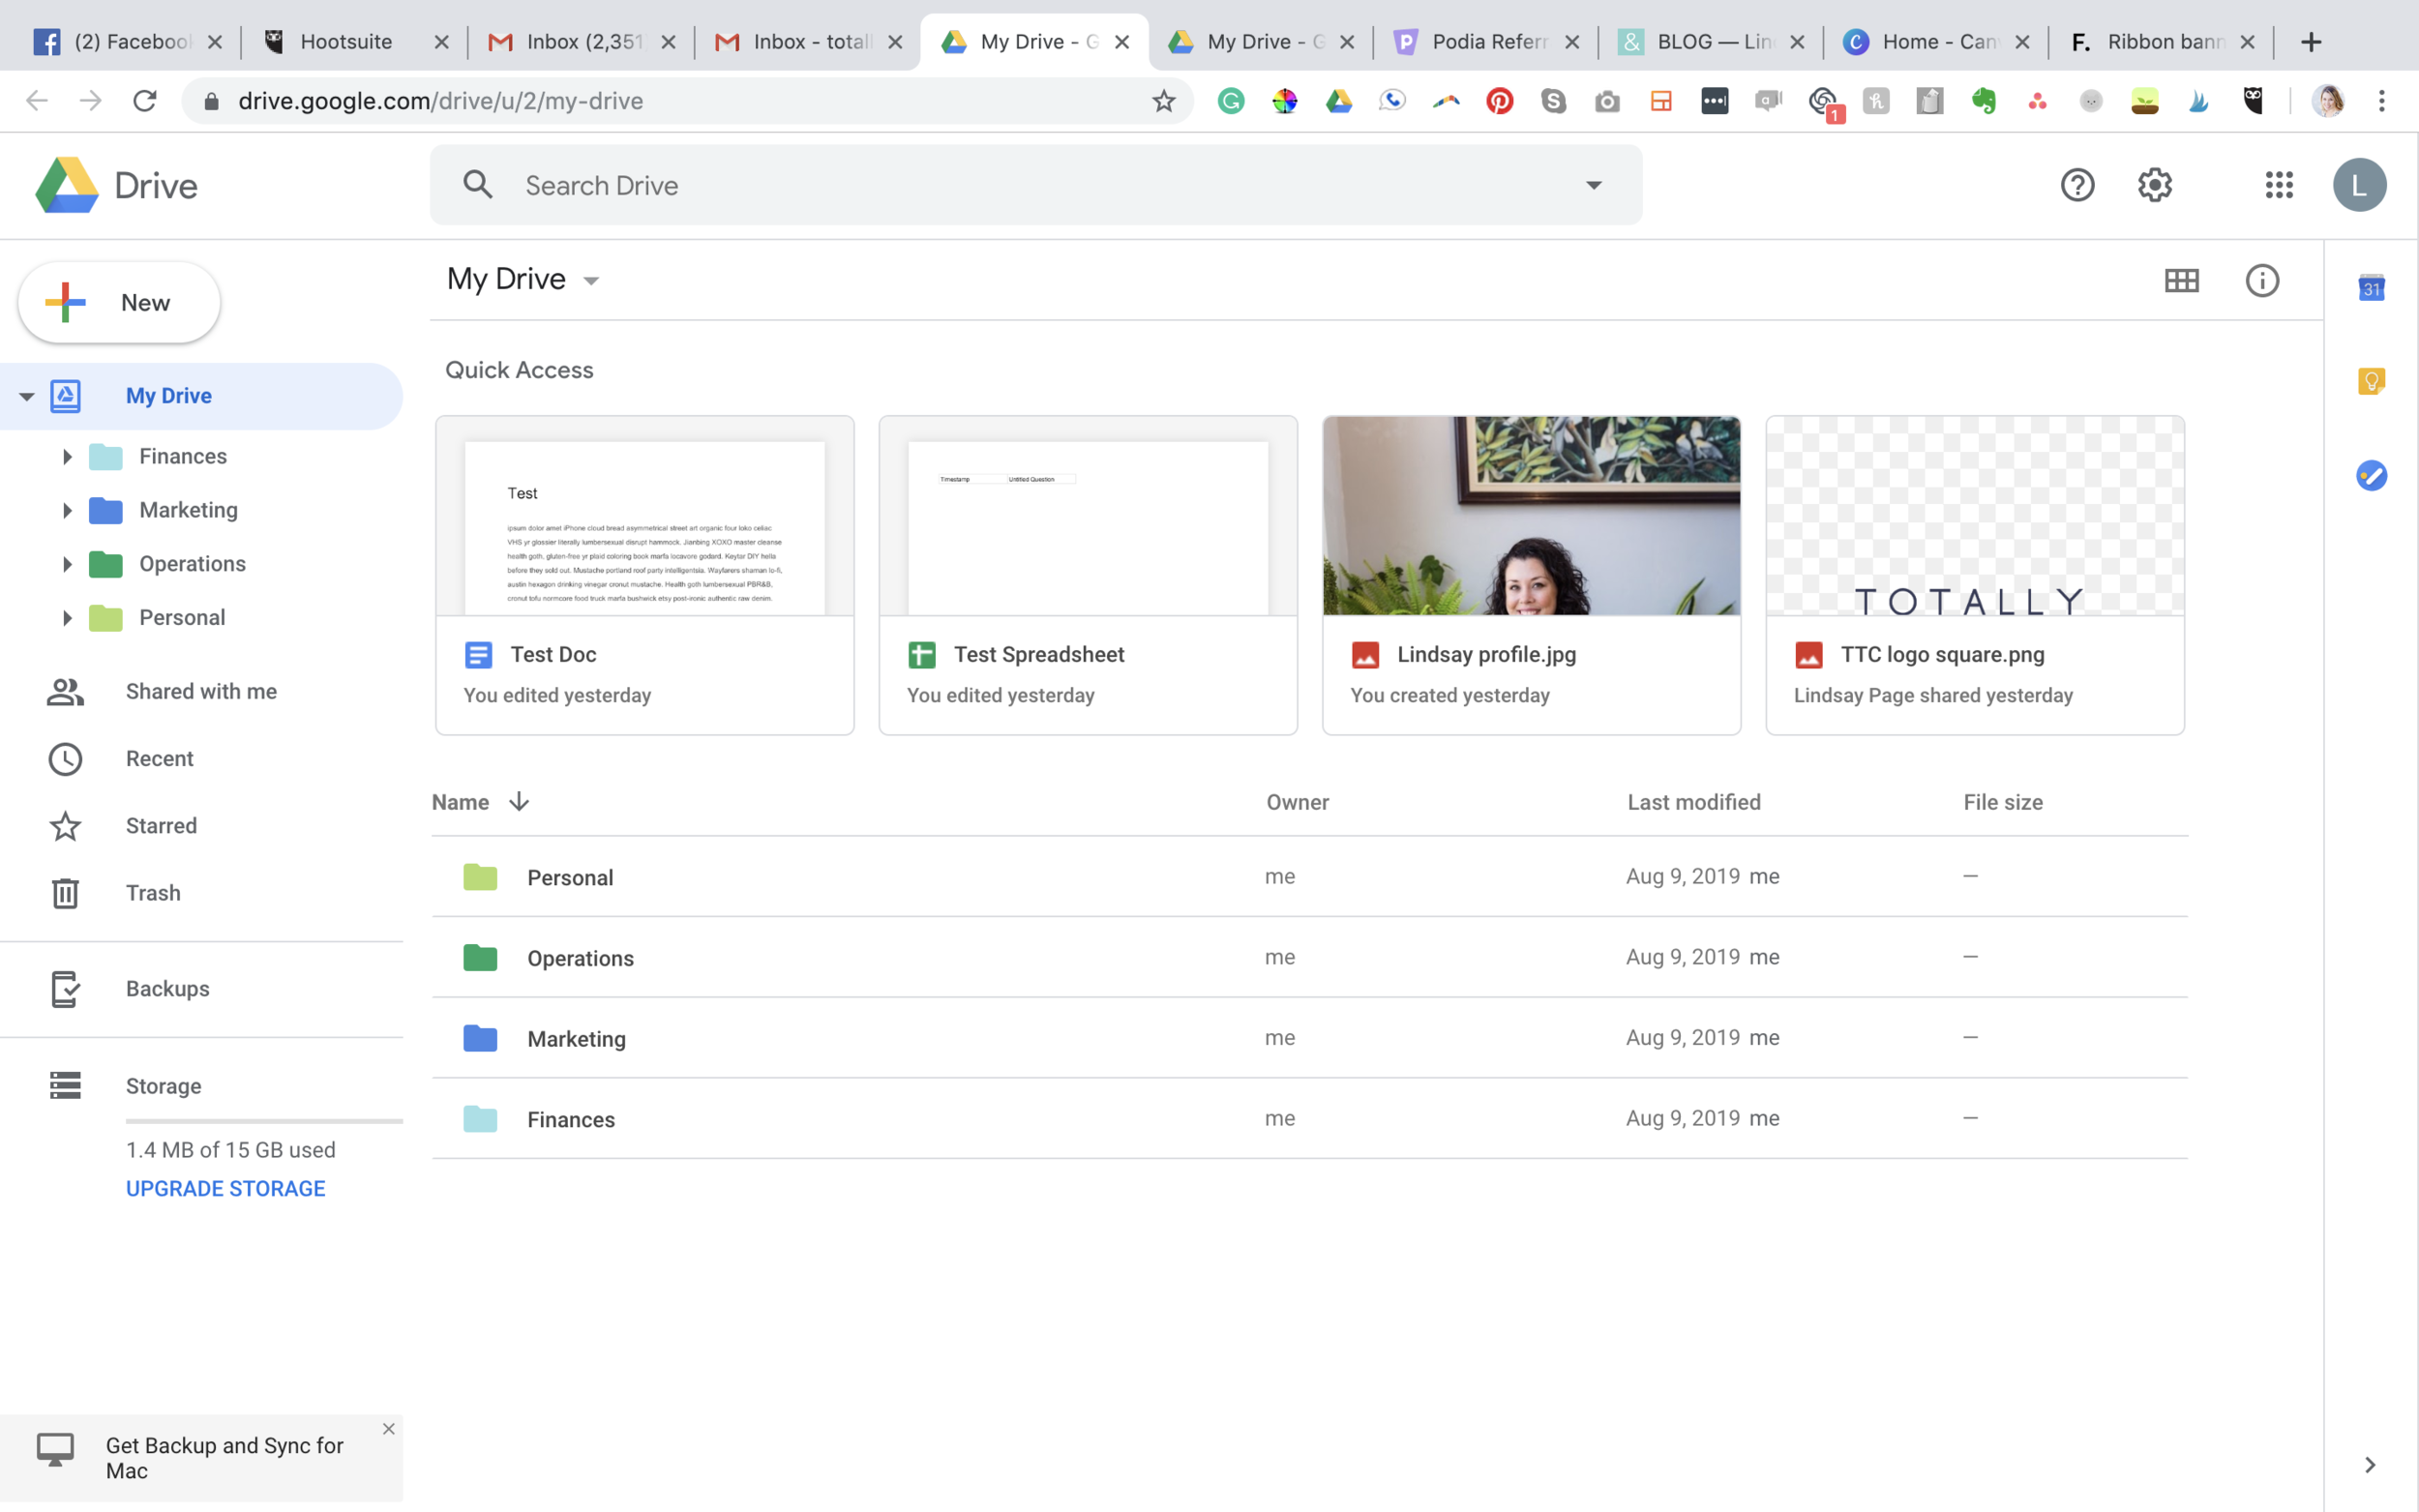 Welcome to the main landing page for Google Drive